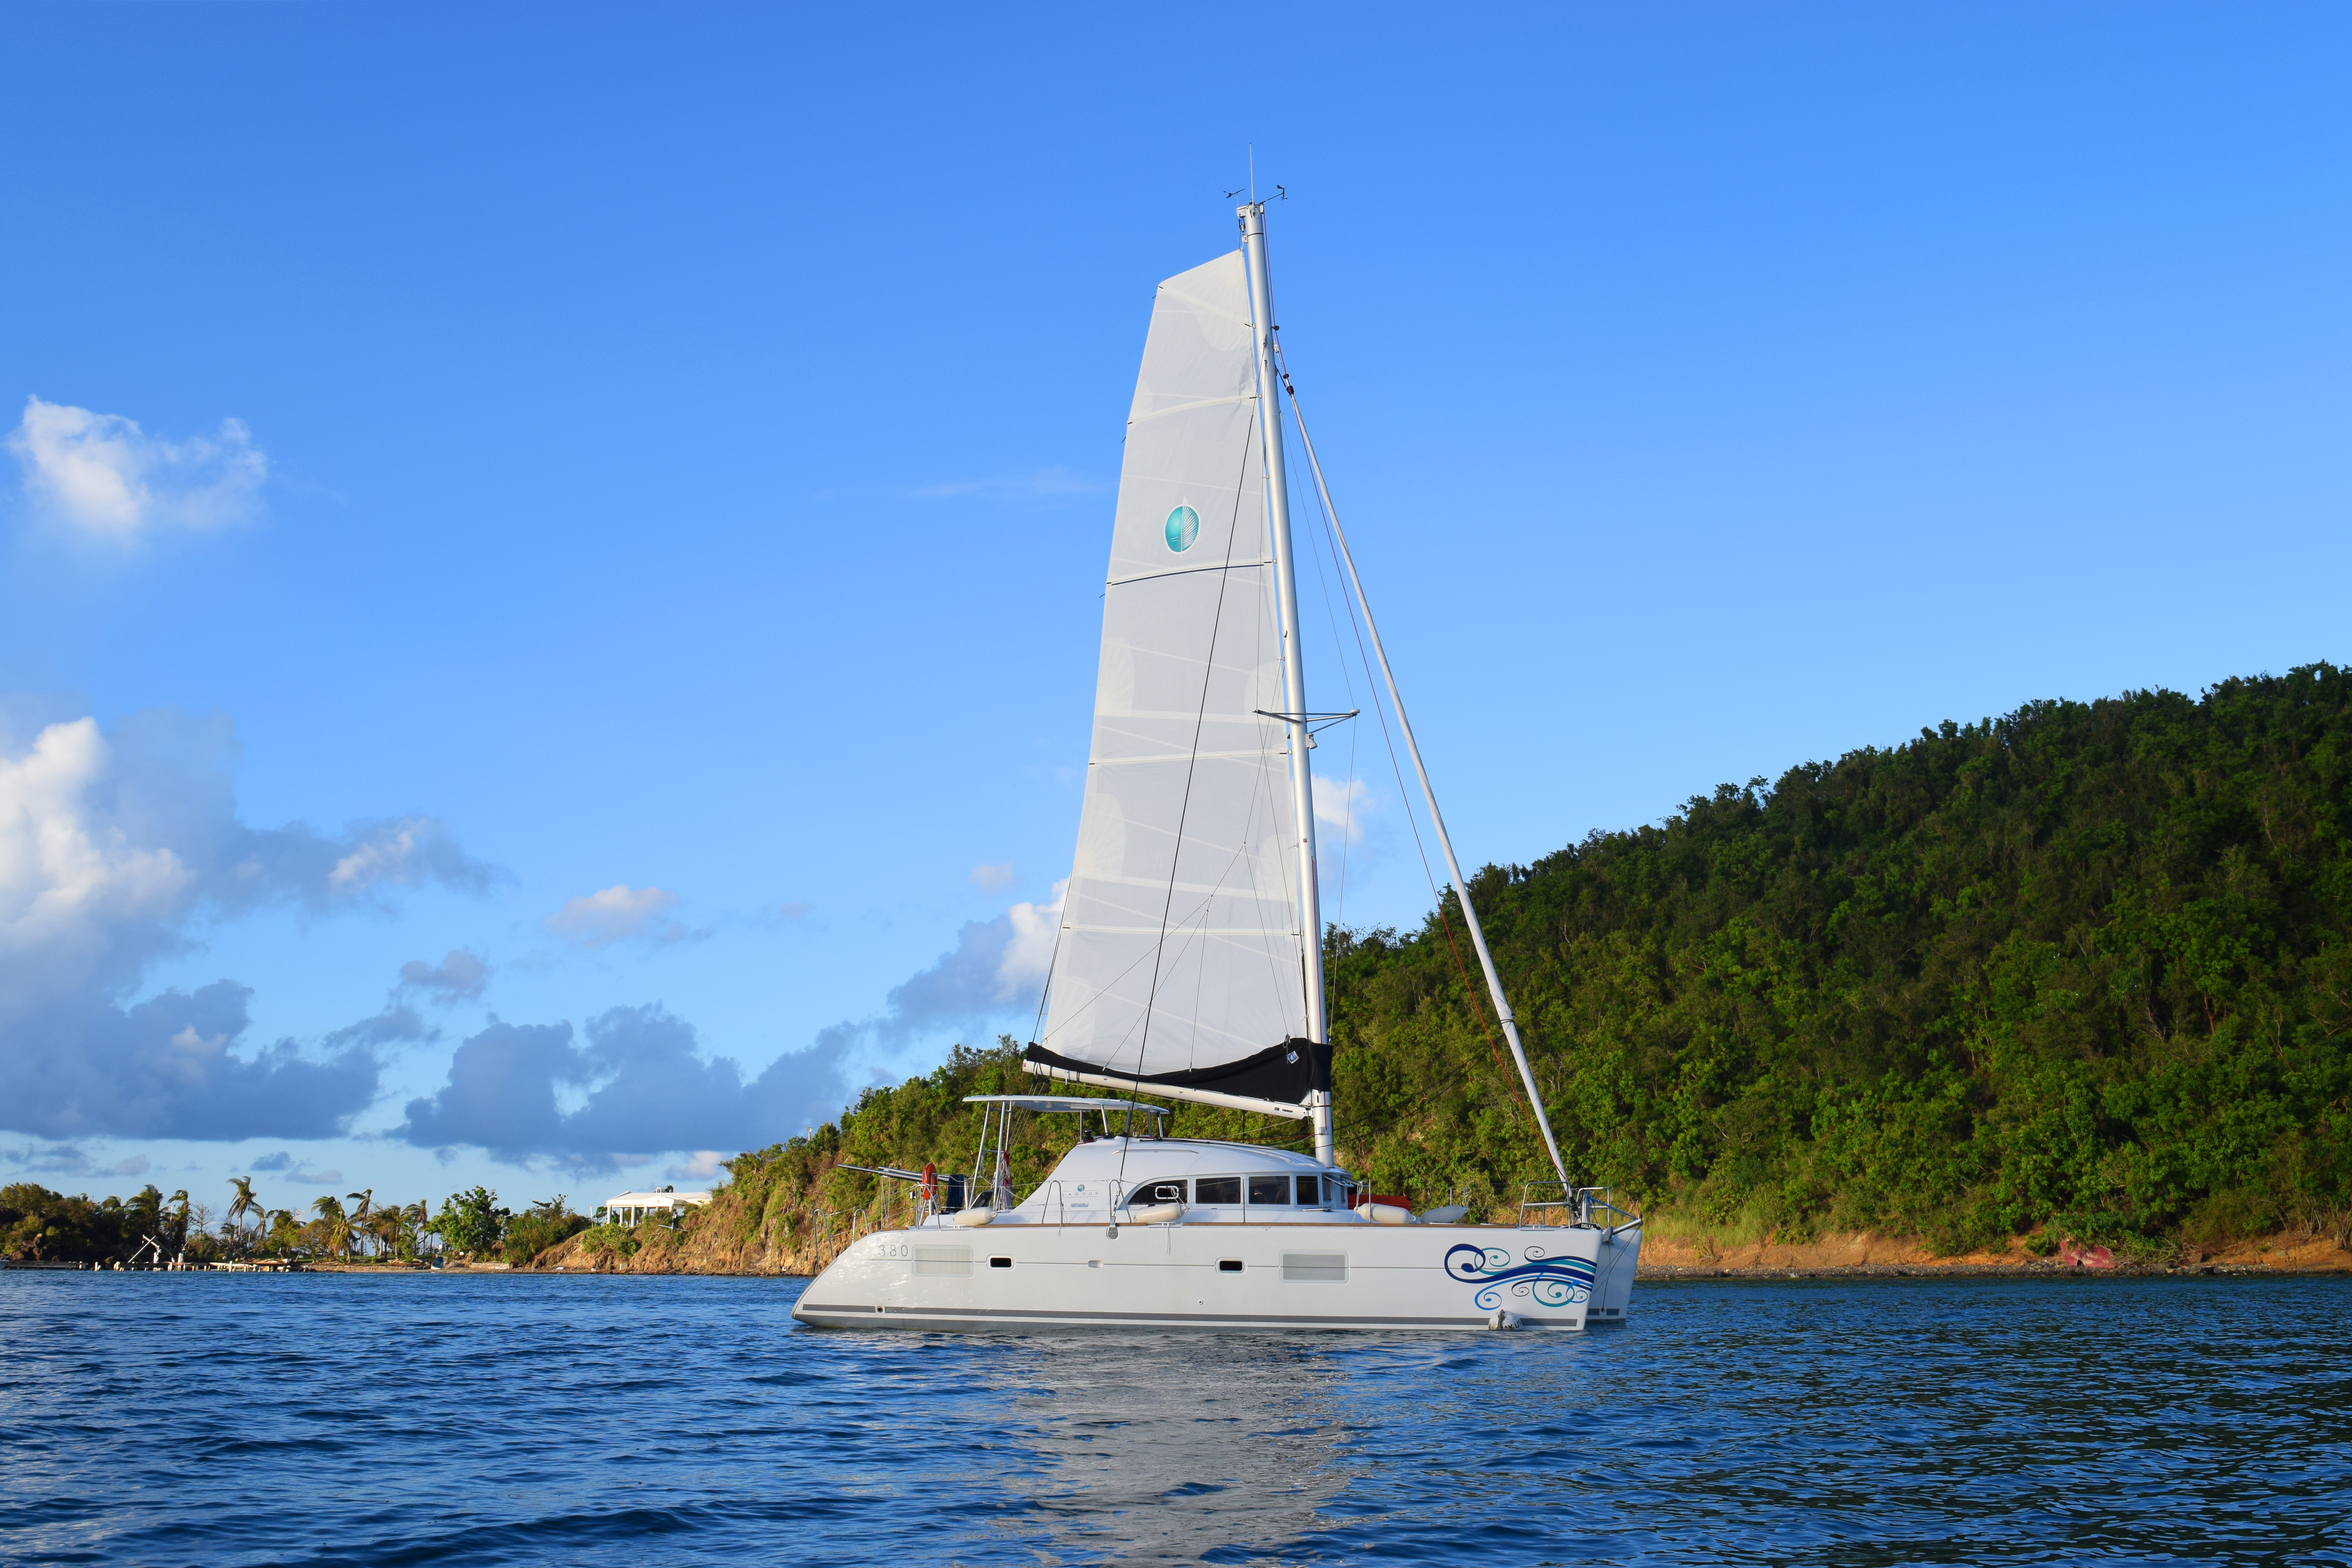 Great sailing in the SVIs